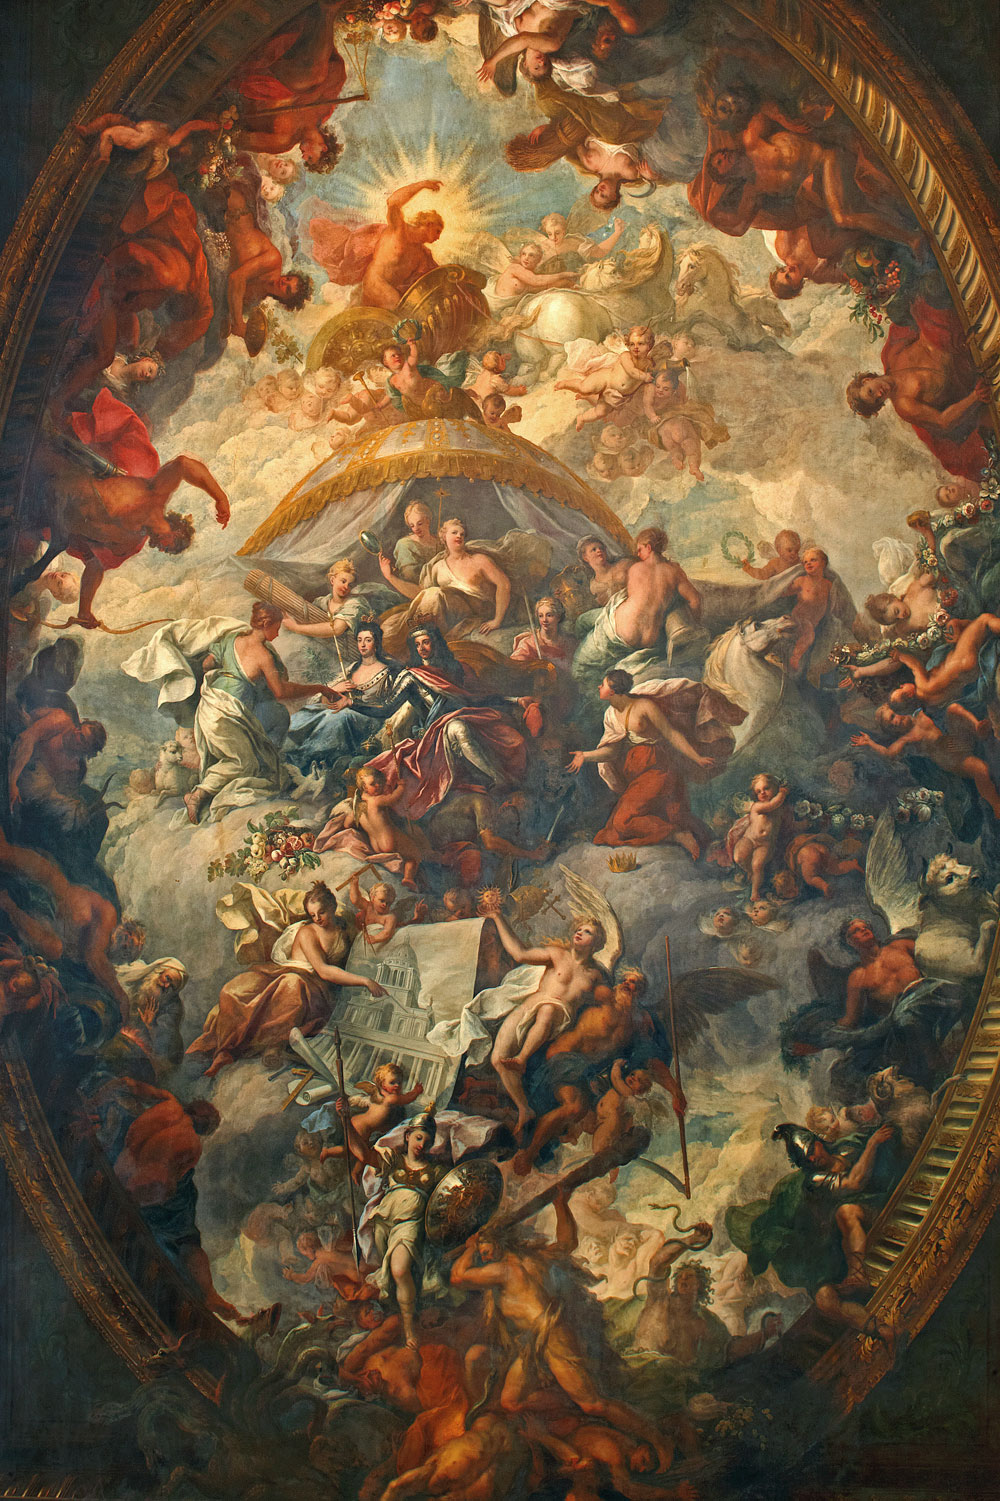 Ceiling of the Painted Hall – © ORNC and Jigsaw Design& Publishing, 2013